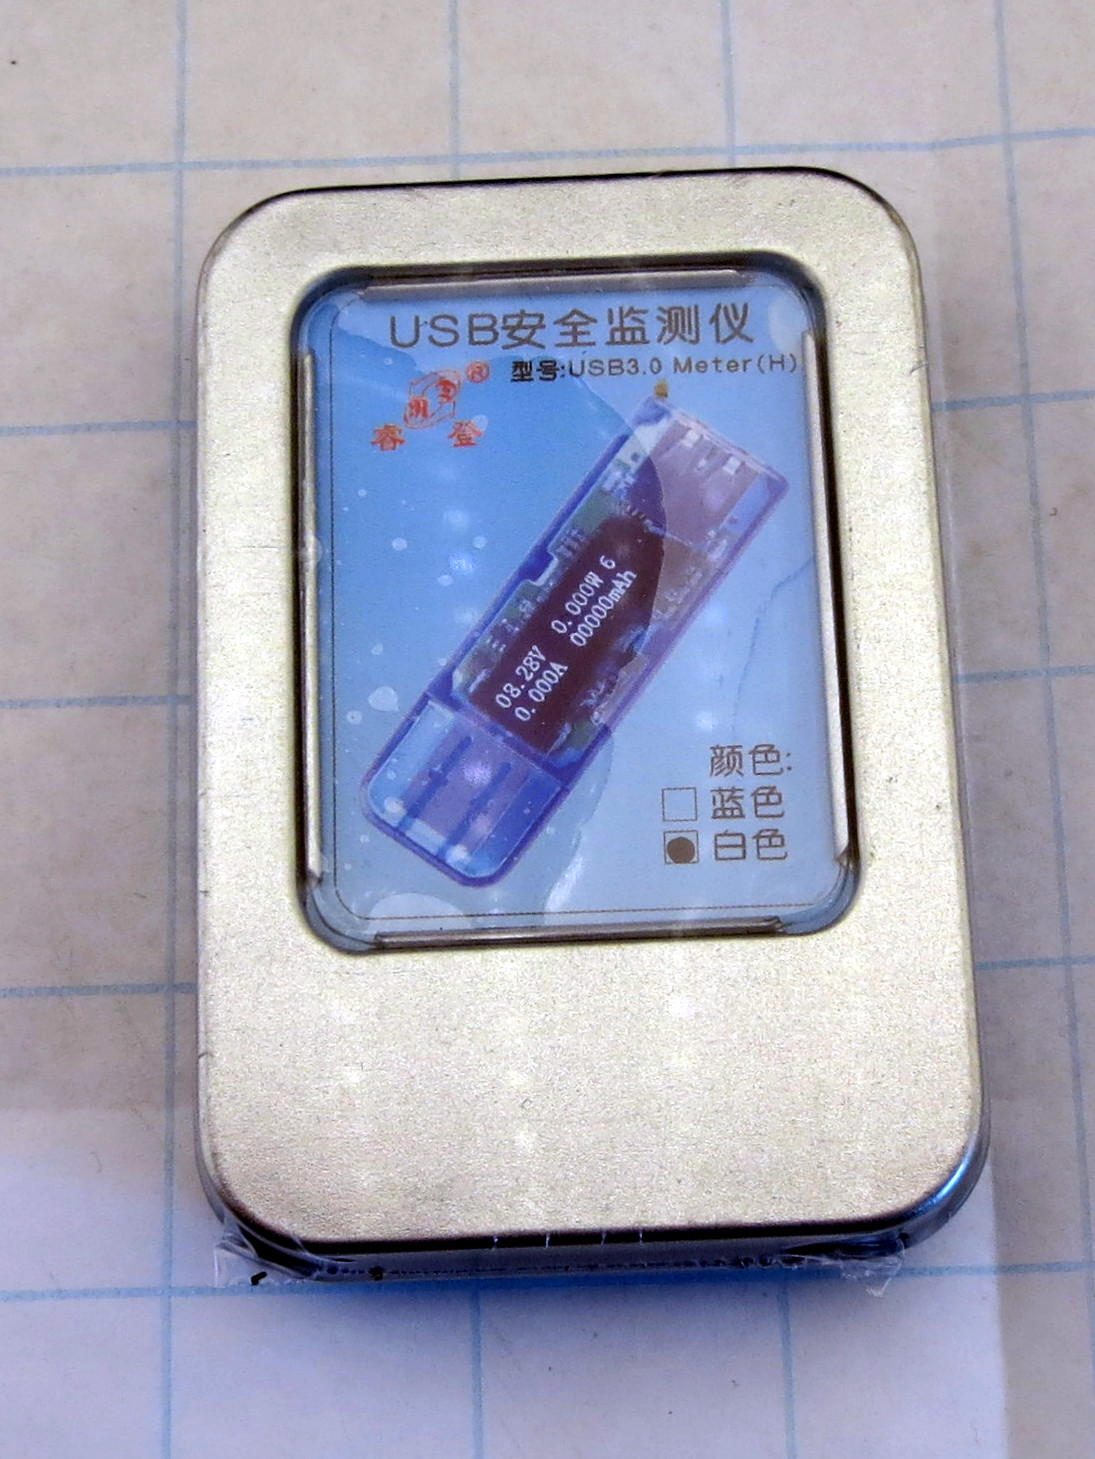 Usb Detector 30 High Voltage 4 Bit Oled Qc 20 Digital The Distance Between Connection Of Discharge Side Ammeter Nice Tin Can Spots Arent Rustyet That Holds Everything Safe From External Influences Top Part Is Actually A 40cm Wide 7 Fold Booklet With